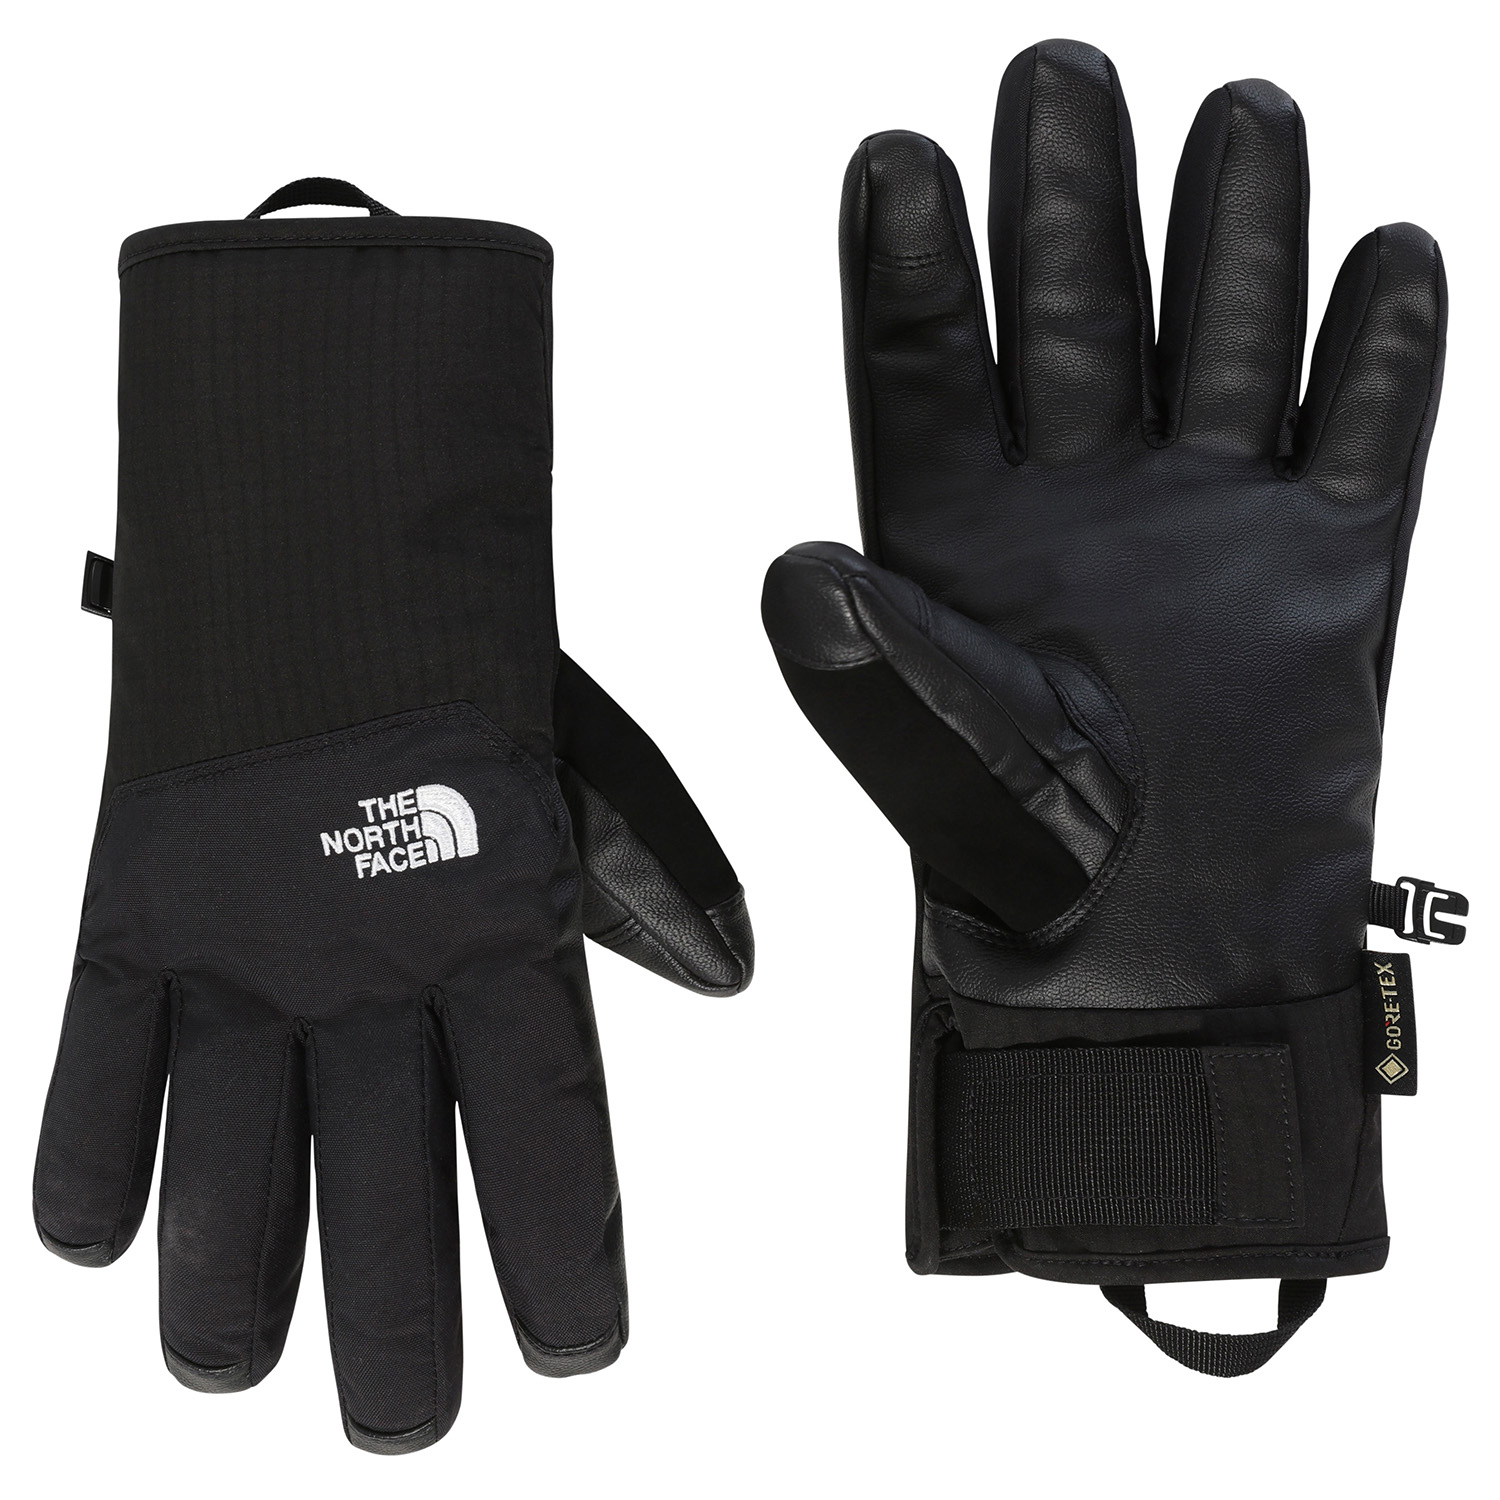 Tnf Black All Sizes The North Face Etip Leather Unisex Gloves